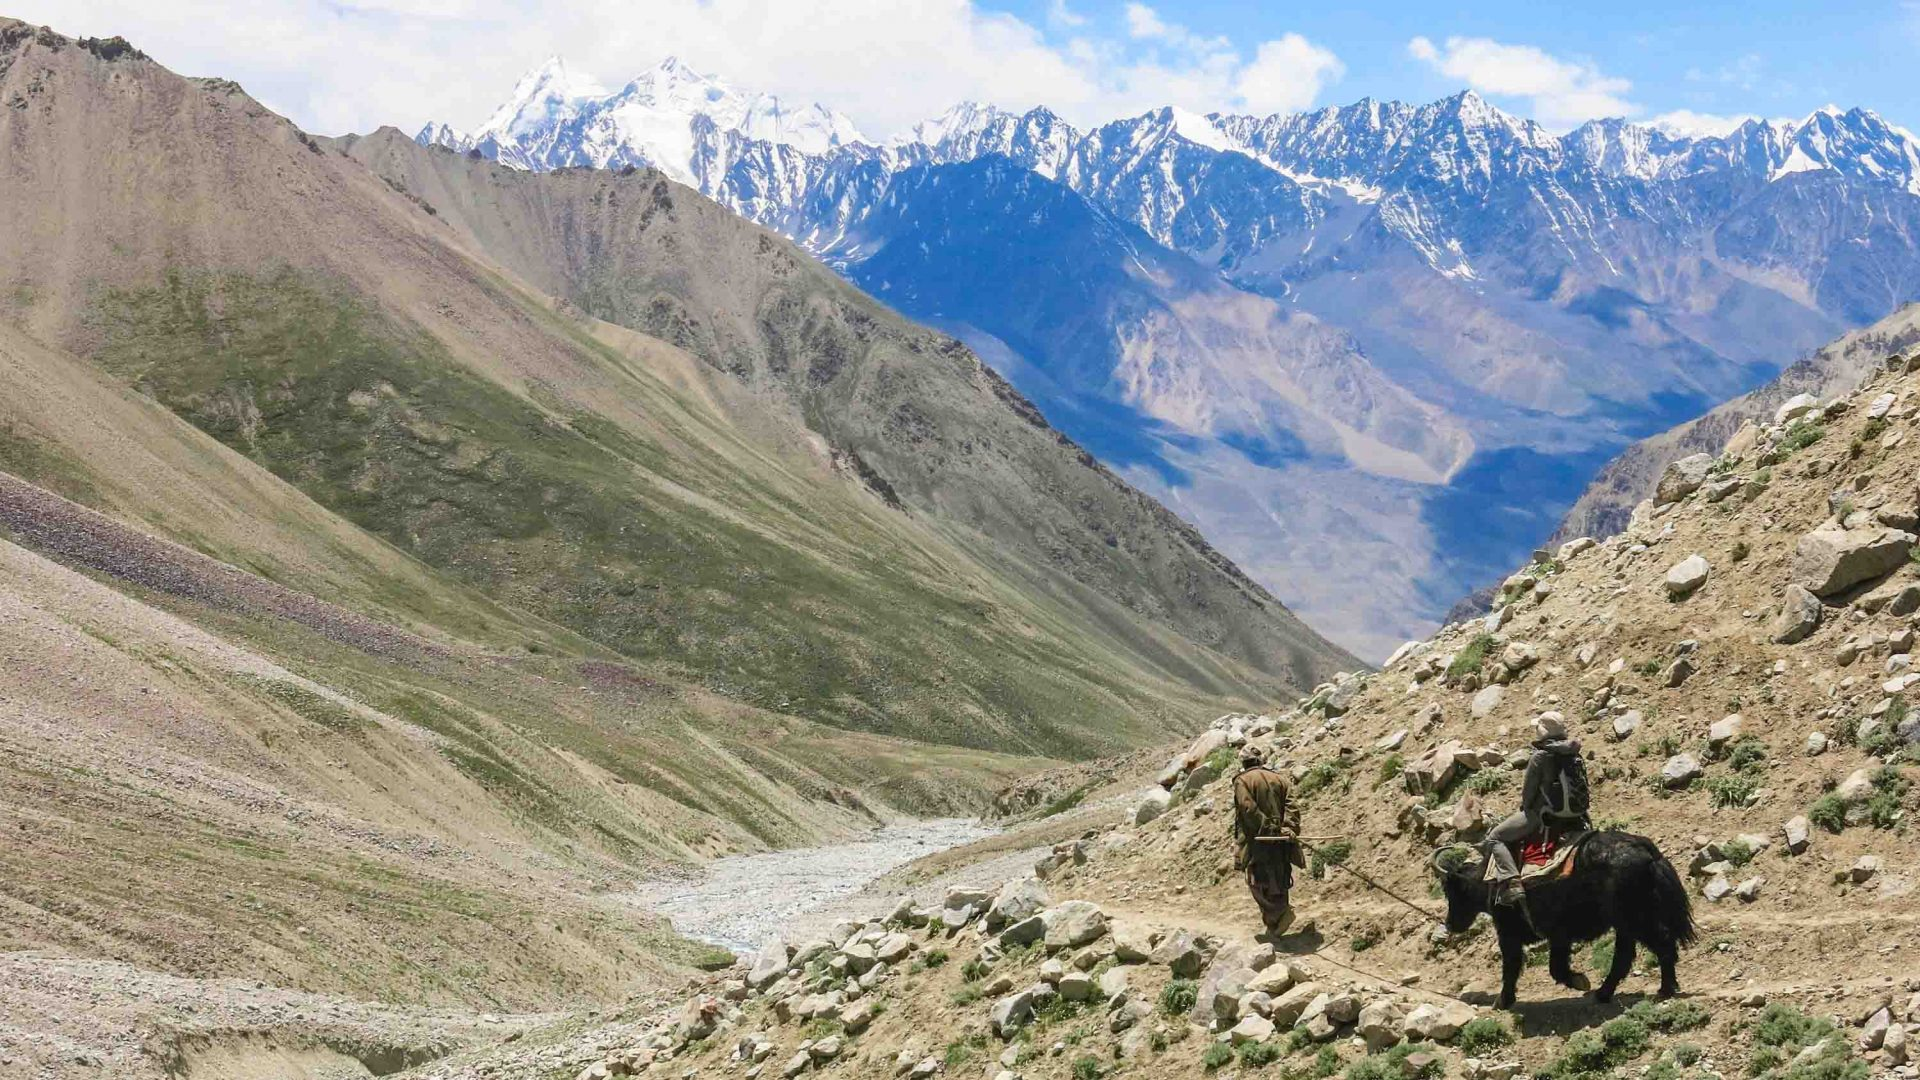 A local Wakhi man makes his way through the ancient trade route of the Pamir Mountains.